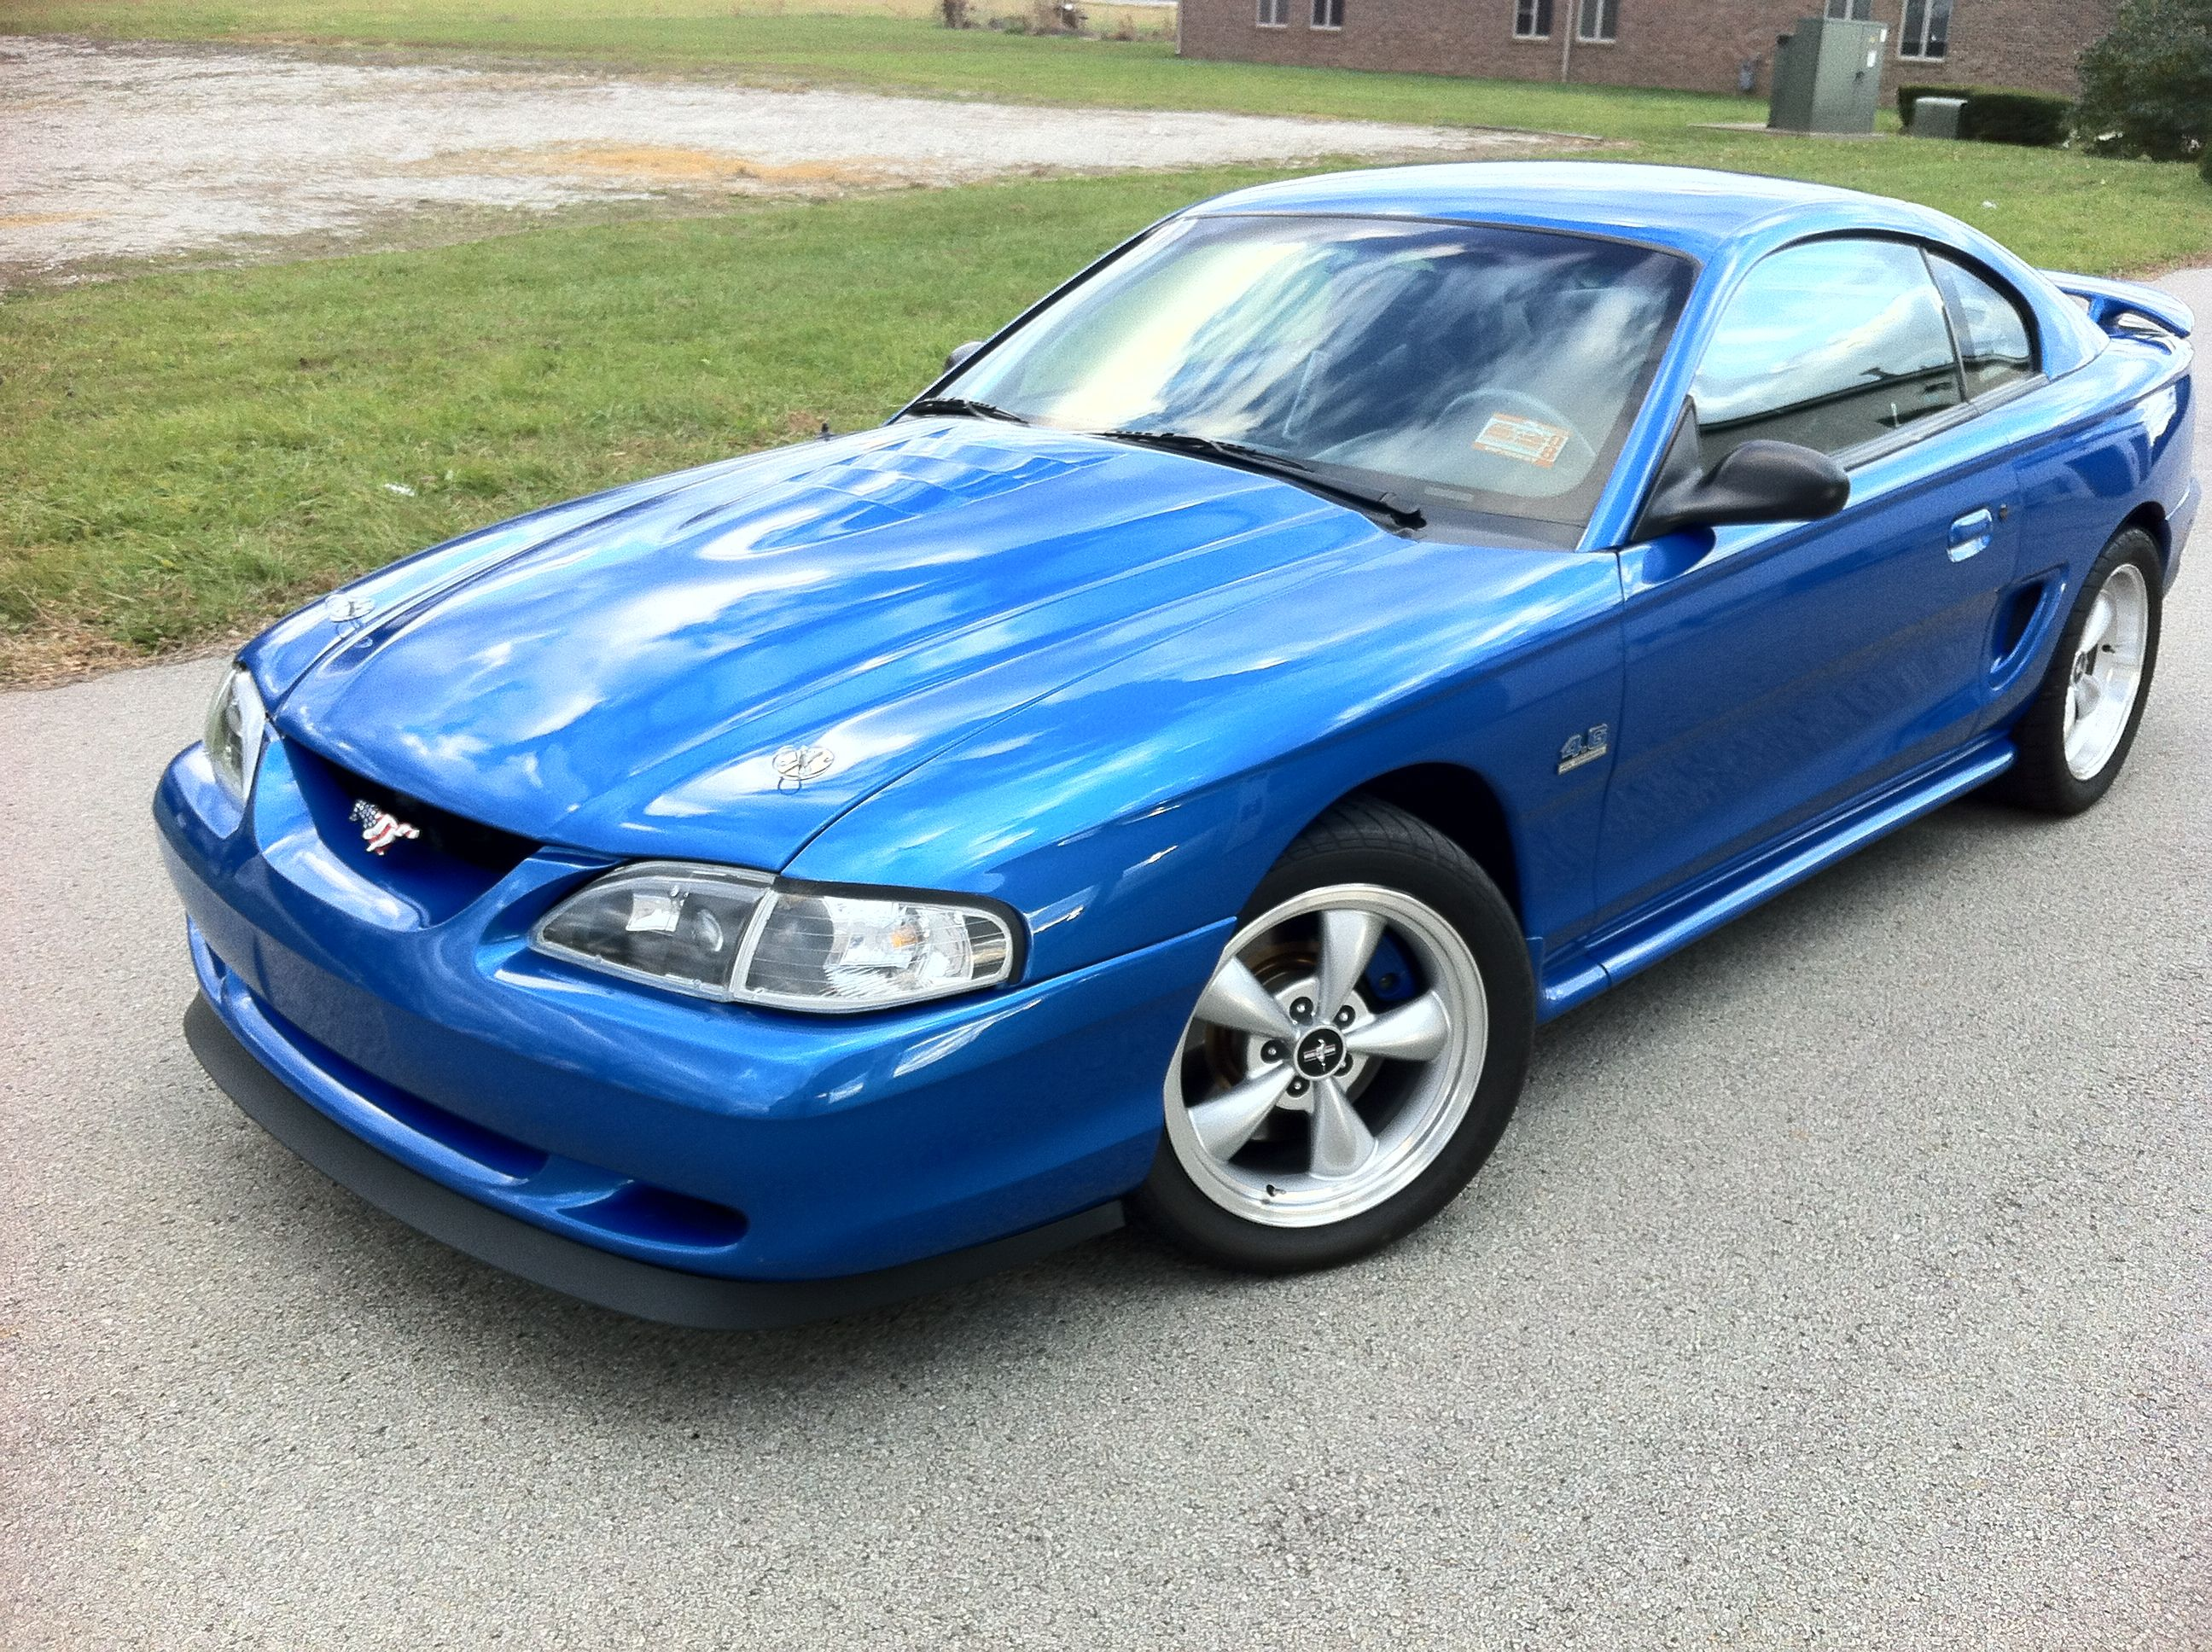 1998 mustang gt bright atlantic blue pi 4 6 lots of other mods